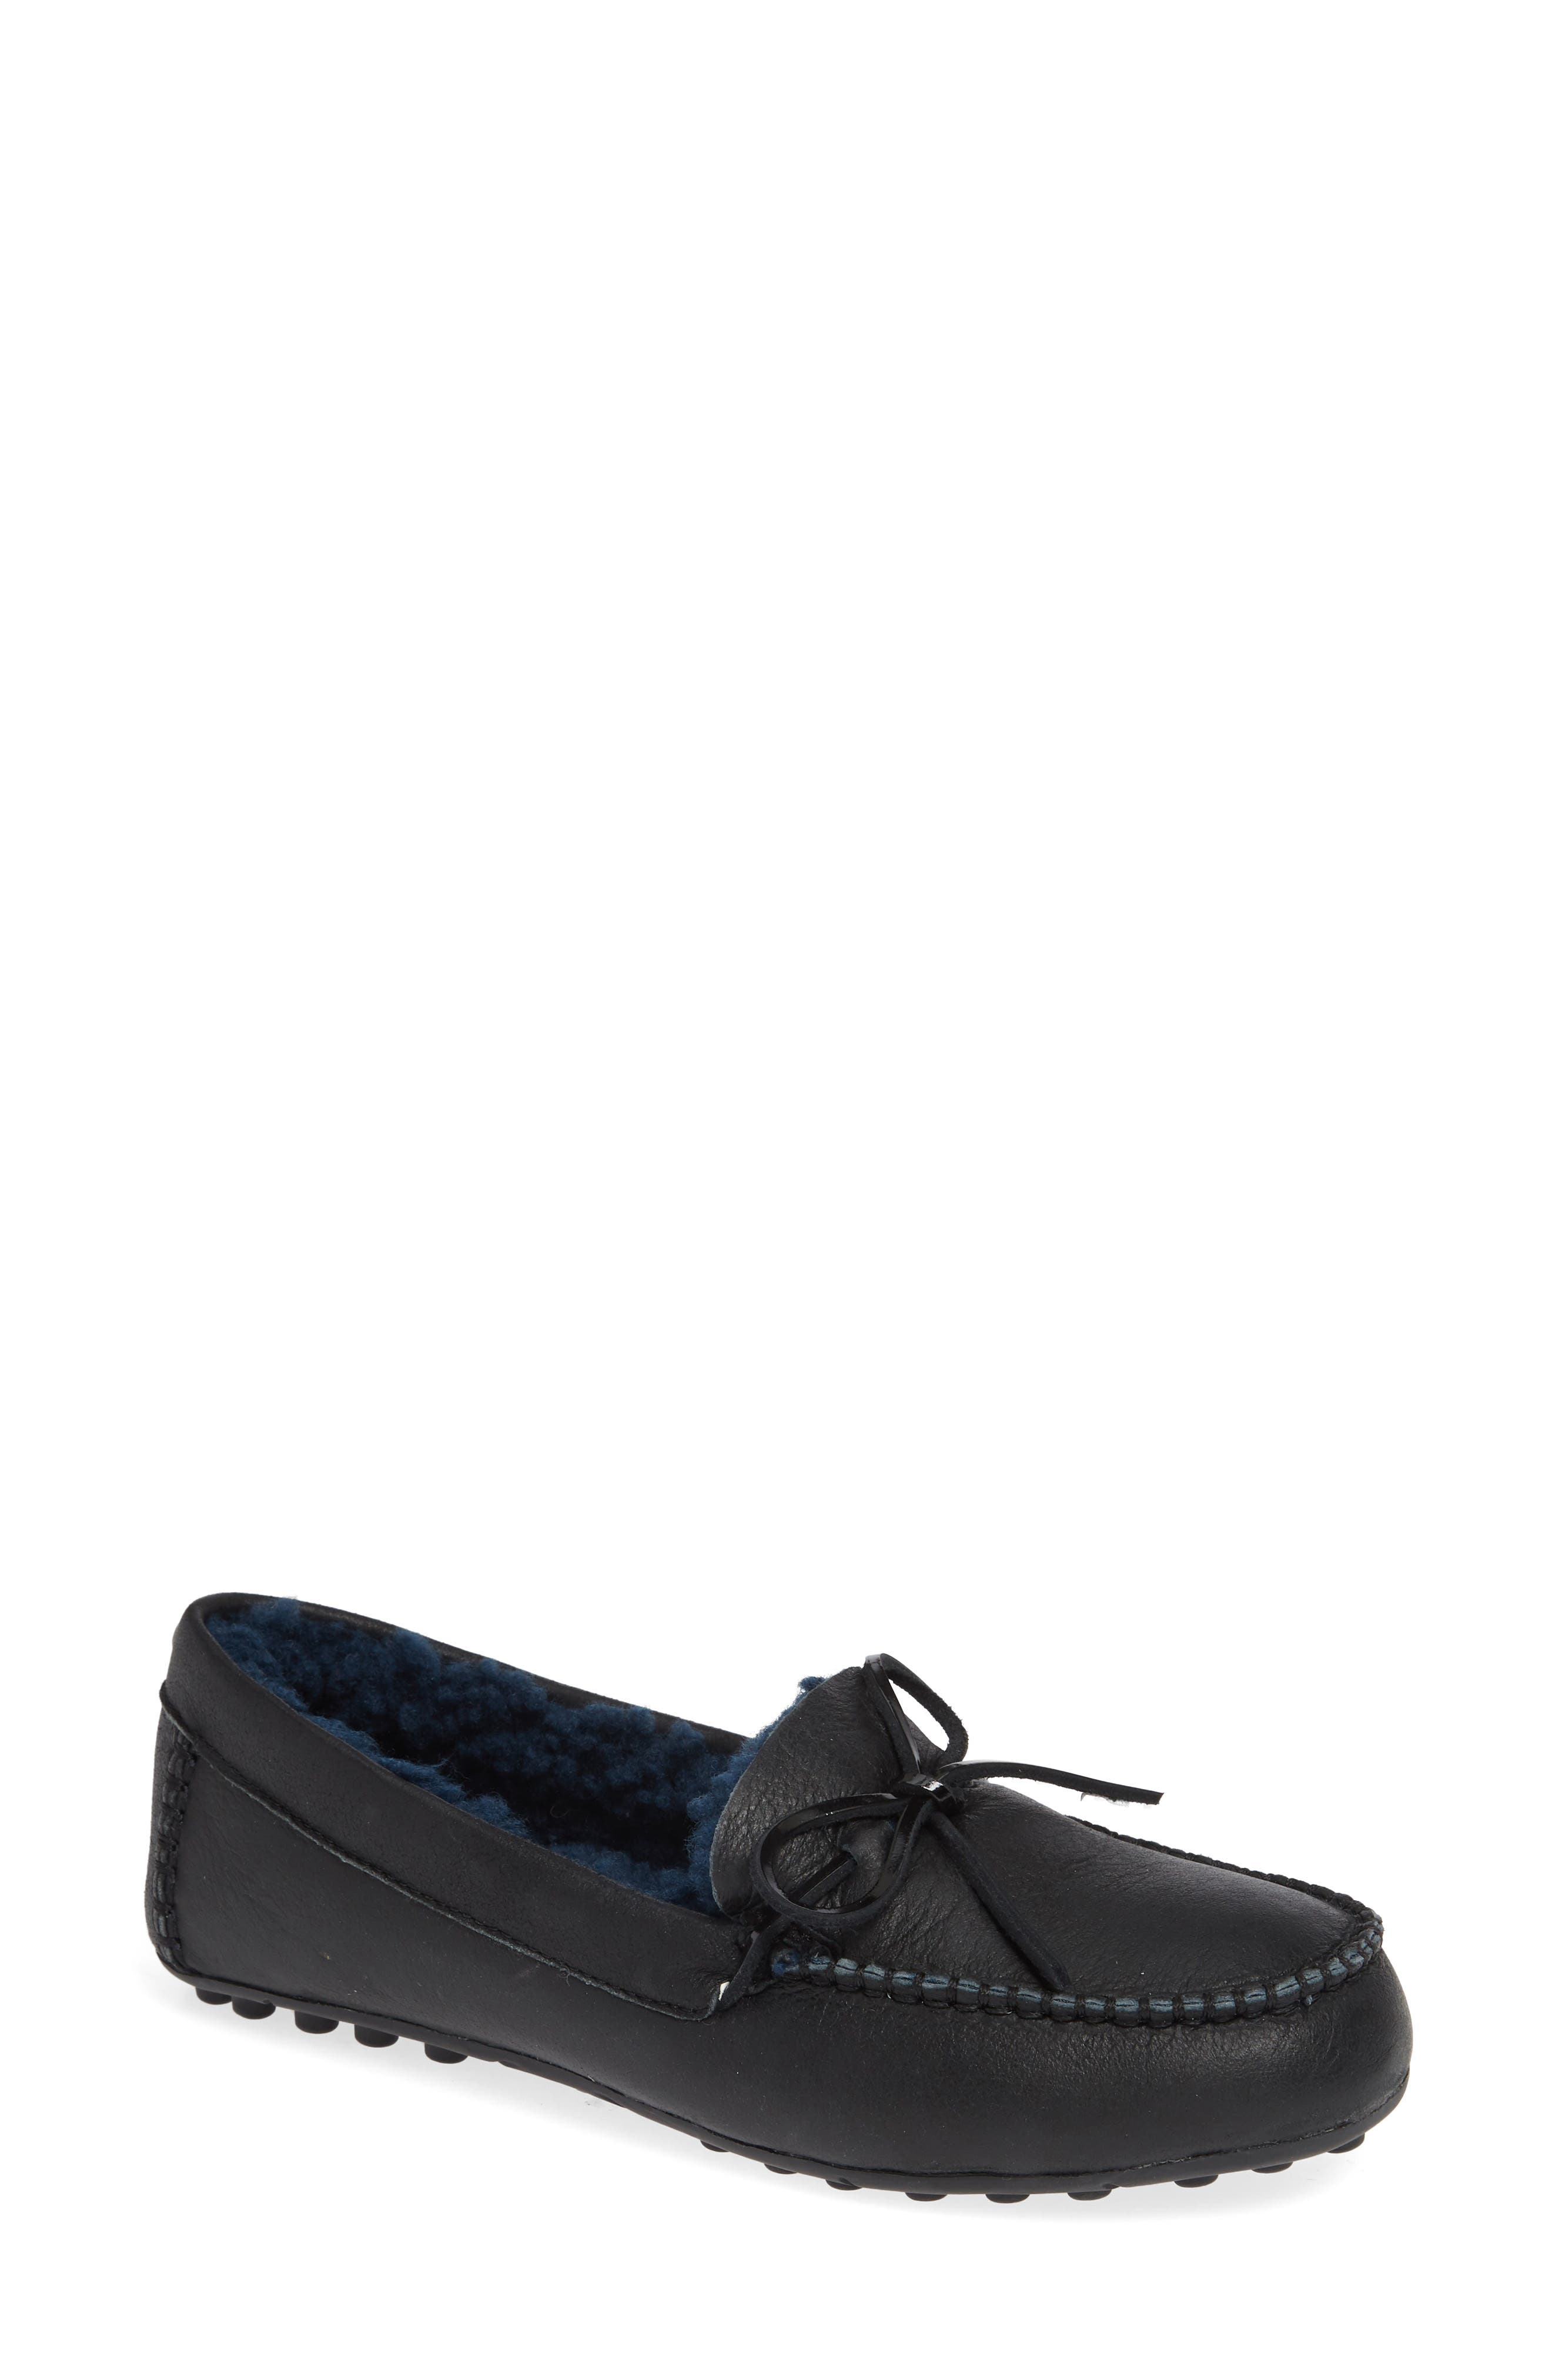 Deluxe Loafer,                         Main,                         color, BLACK LEATHER